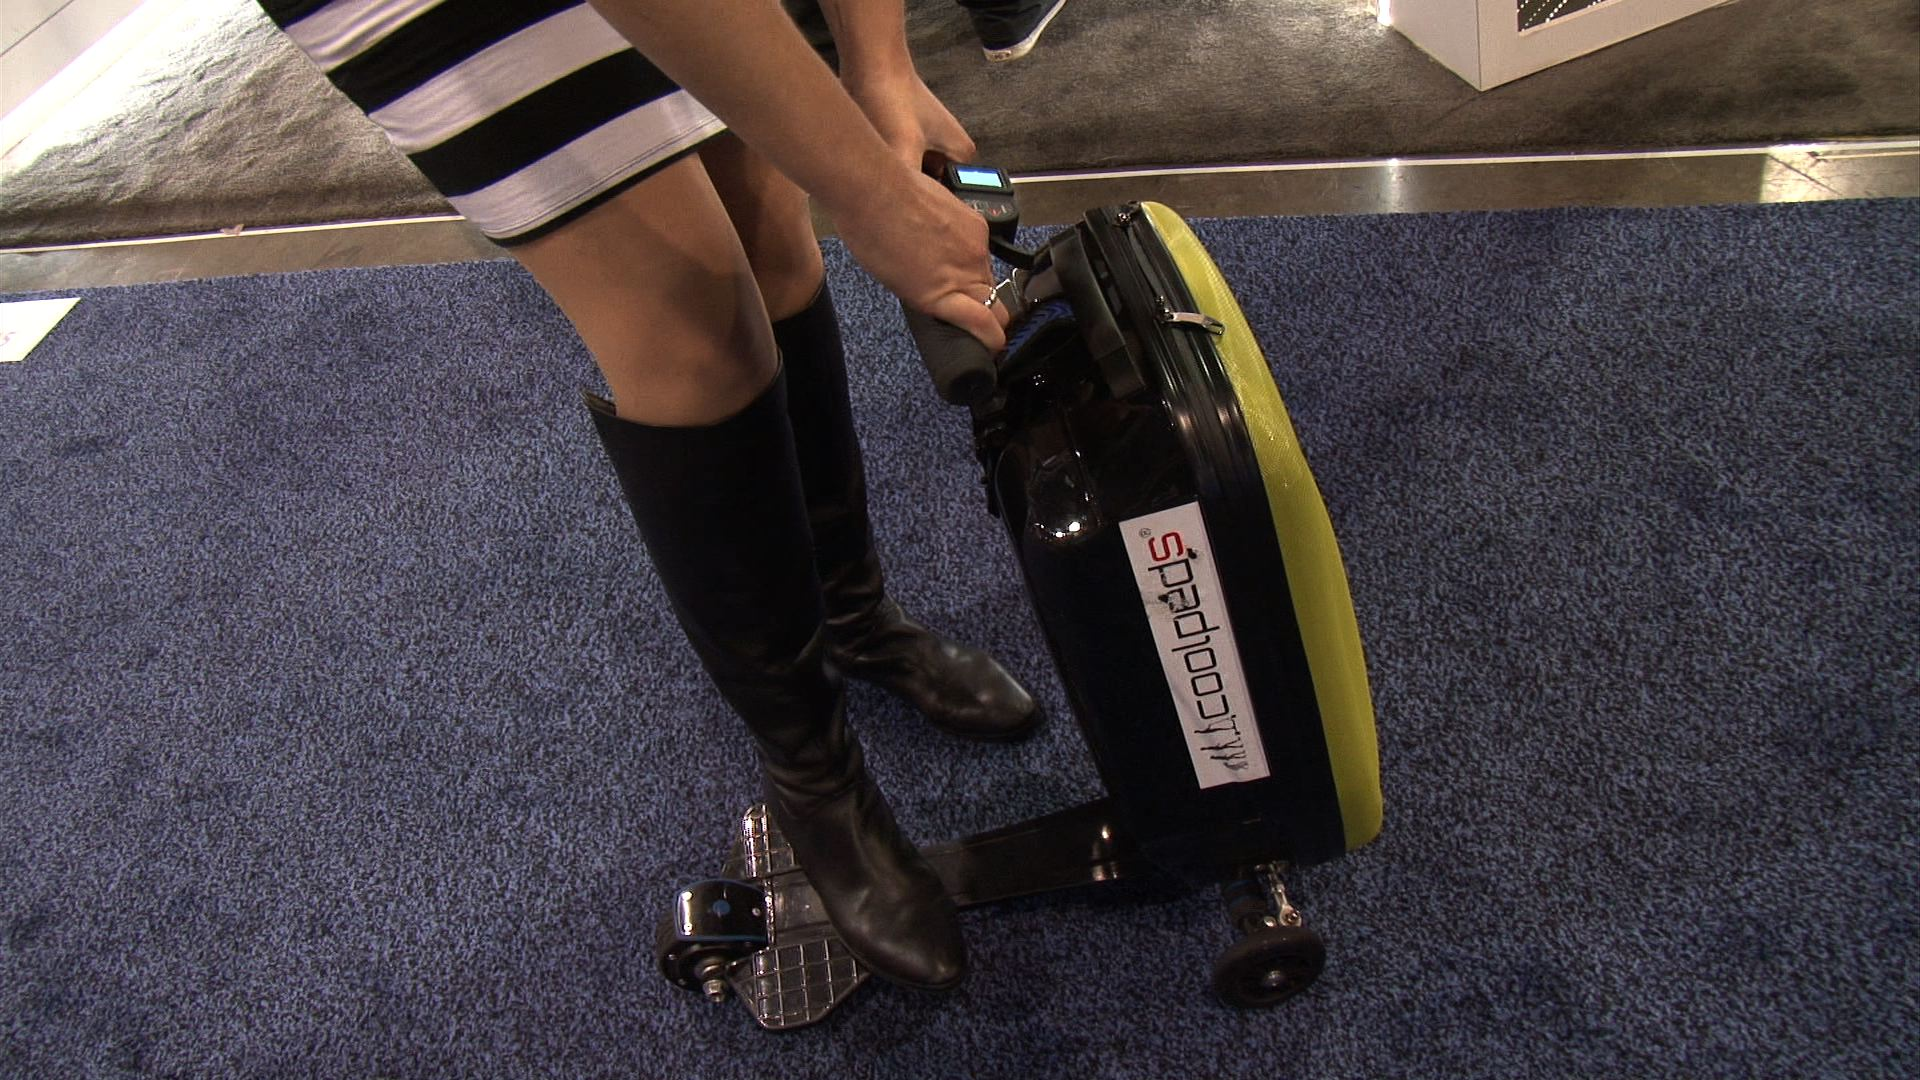 Video: Take a ride on this ... suitcase?